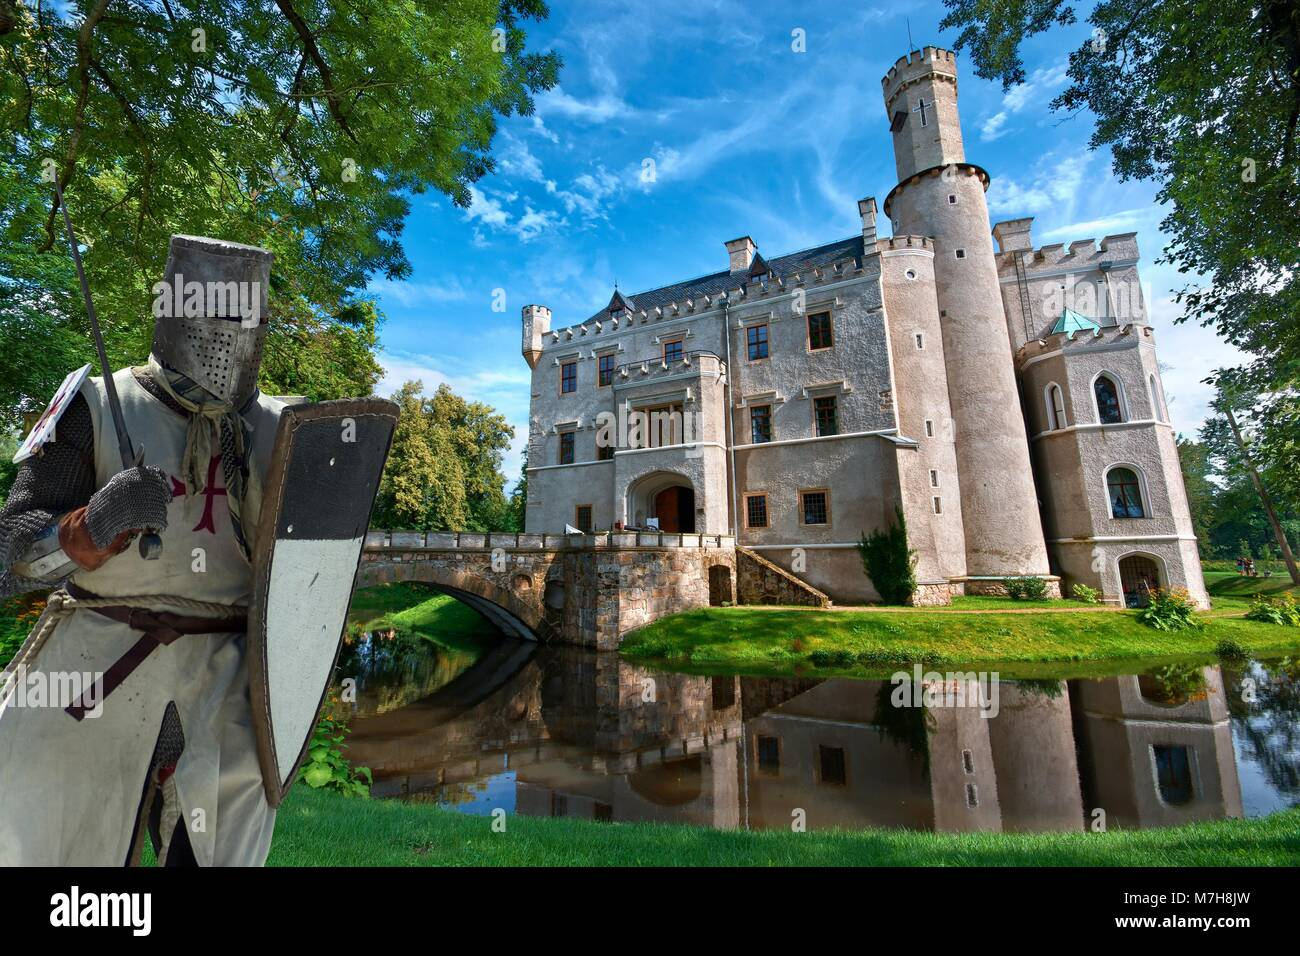 Templar Knight With Neo Gothic Style Castle Surrounded By A Moat In